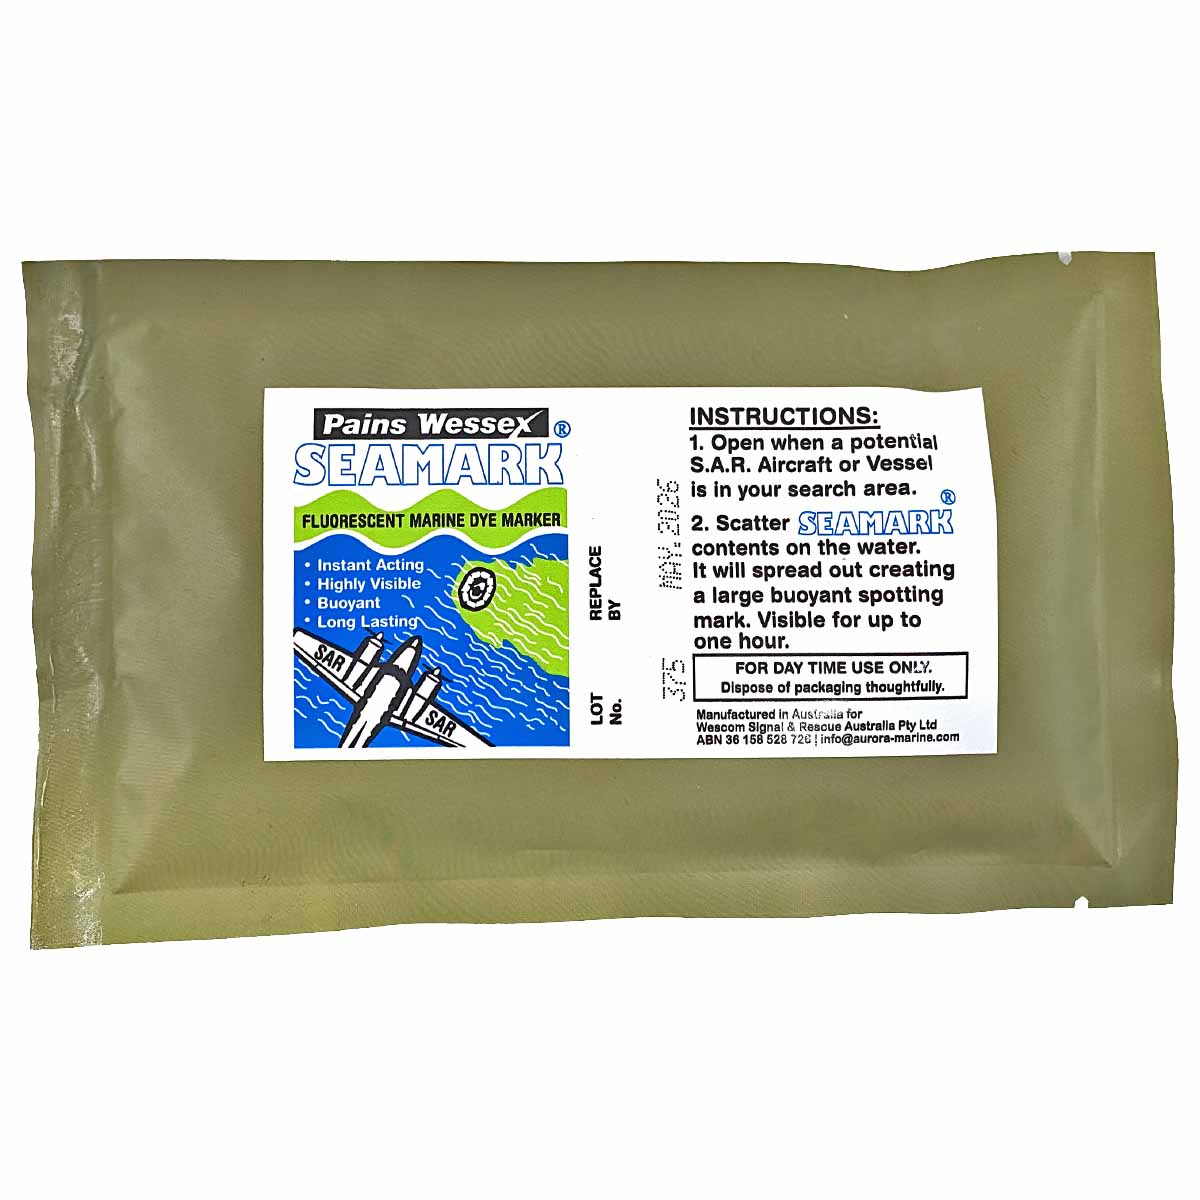 Pains Wessex Sea Dye Marker 40g